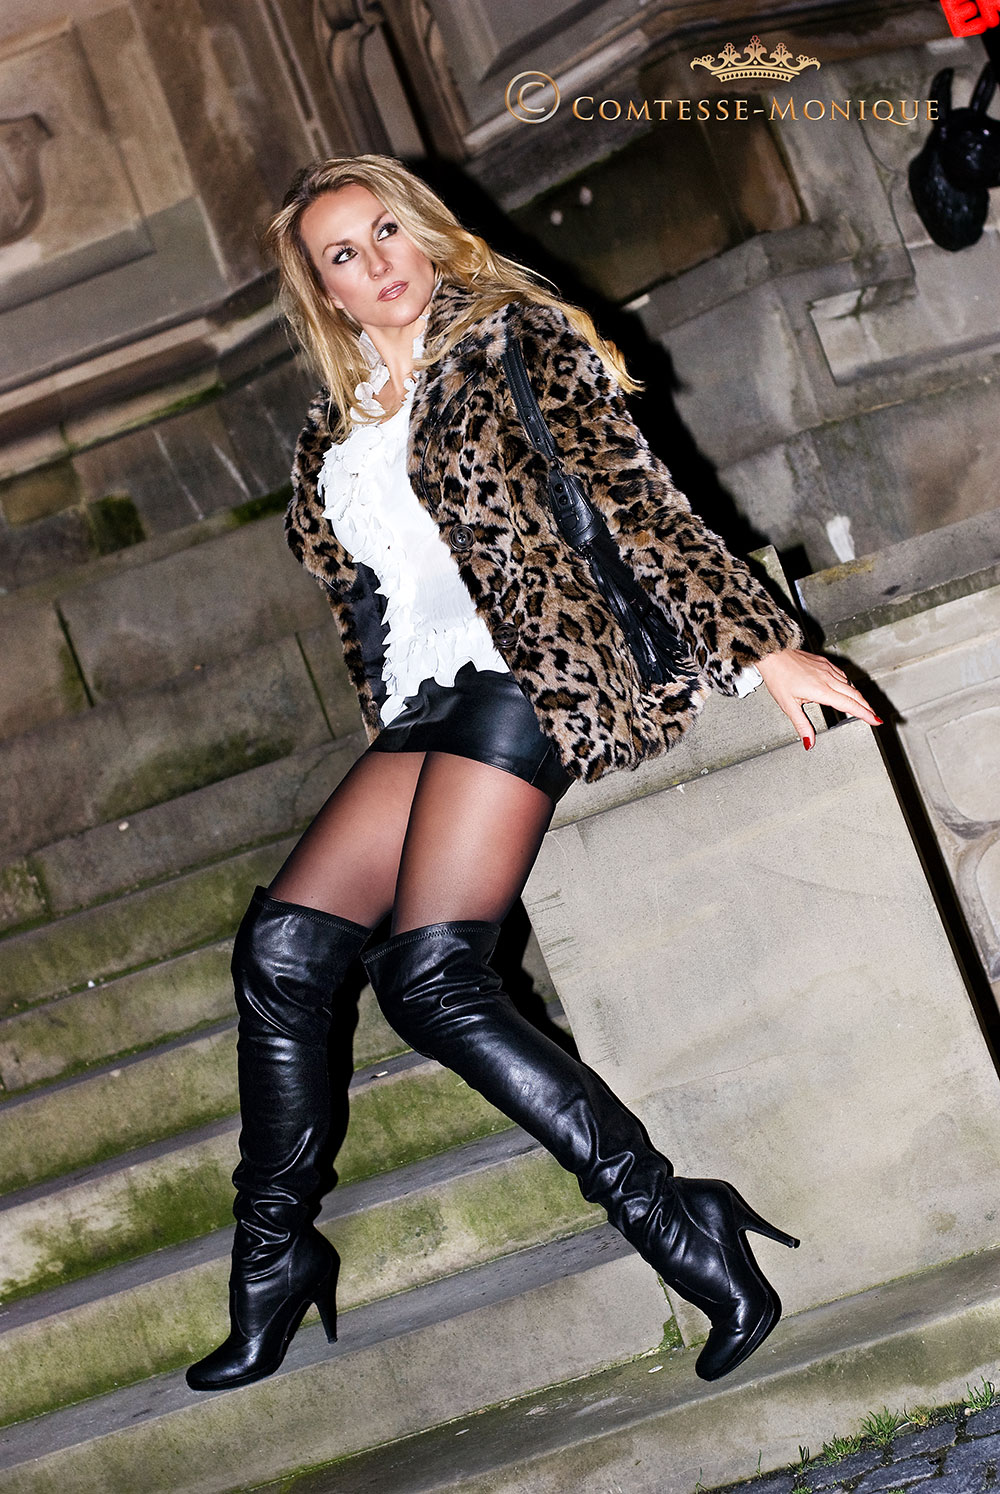 Comtesse Monique http://leather-forum.com/showthread.php?p=51524